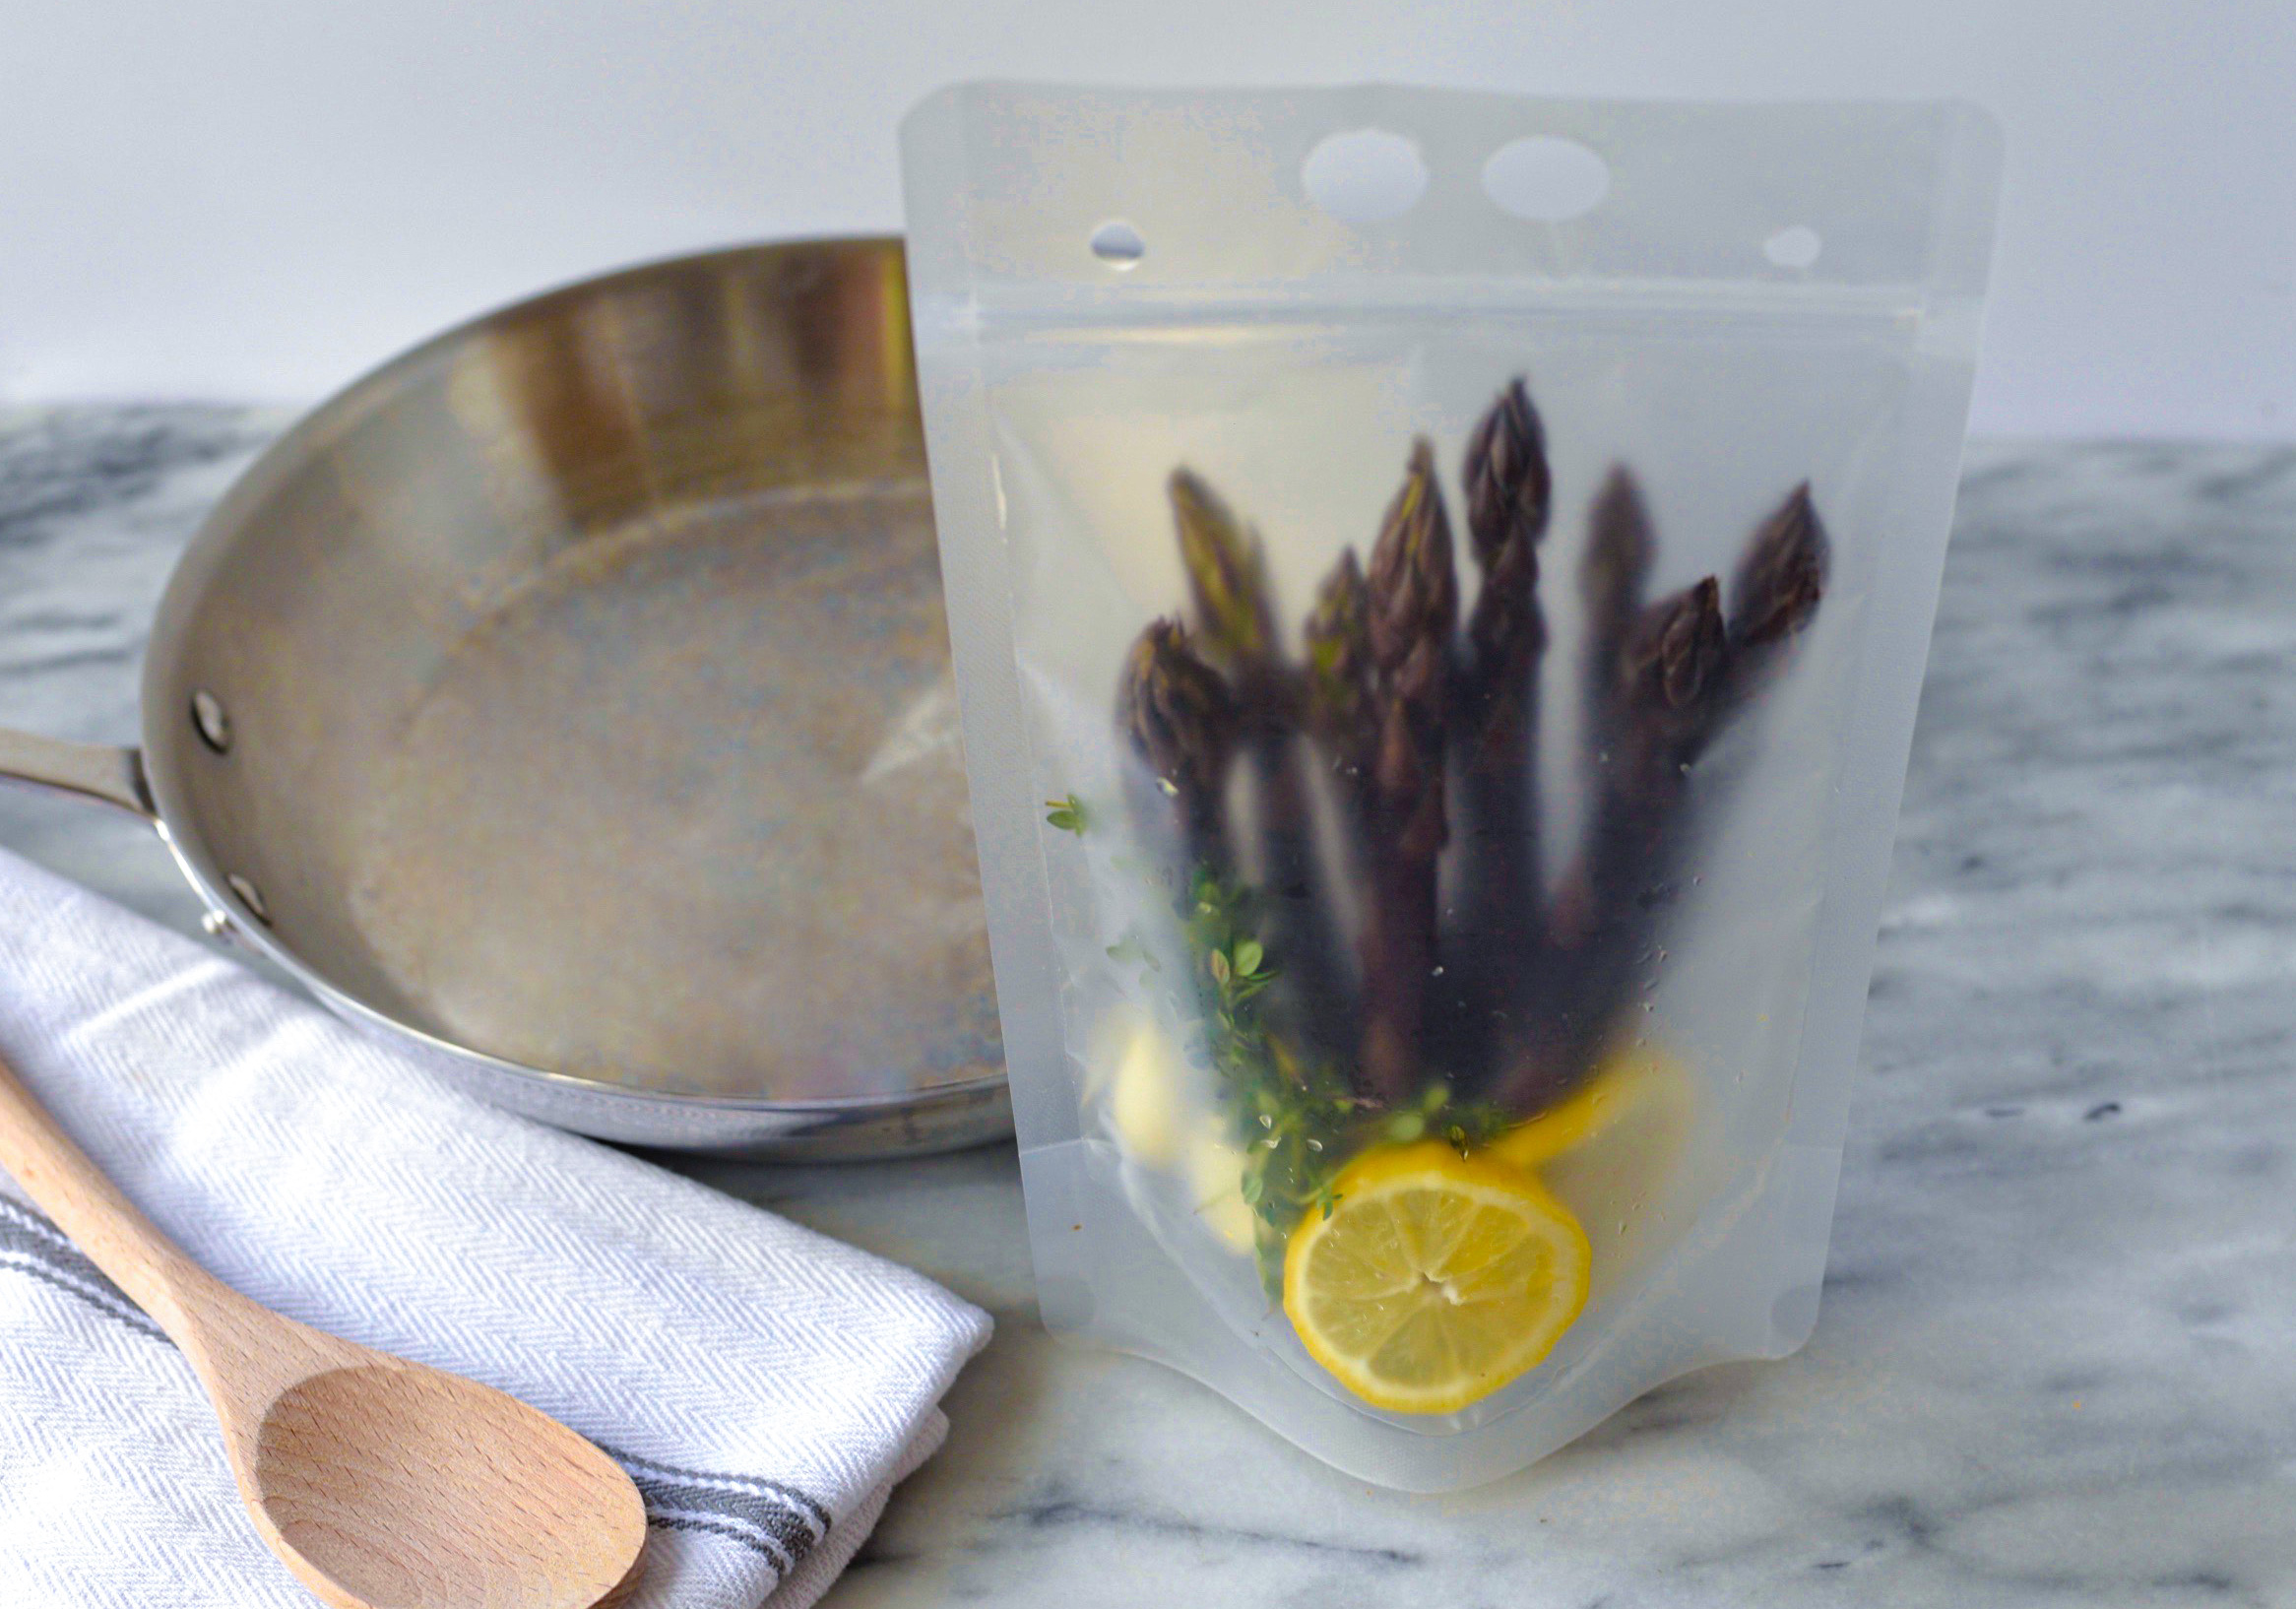 Asparagus Meal Kit Pouch from TableCraft